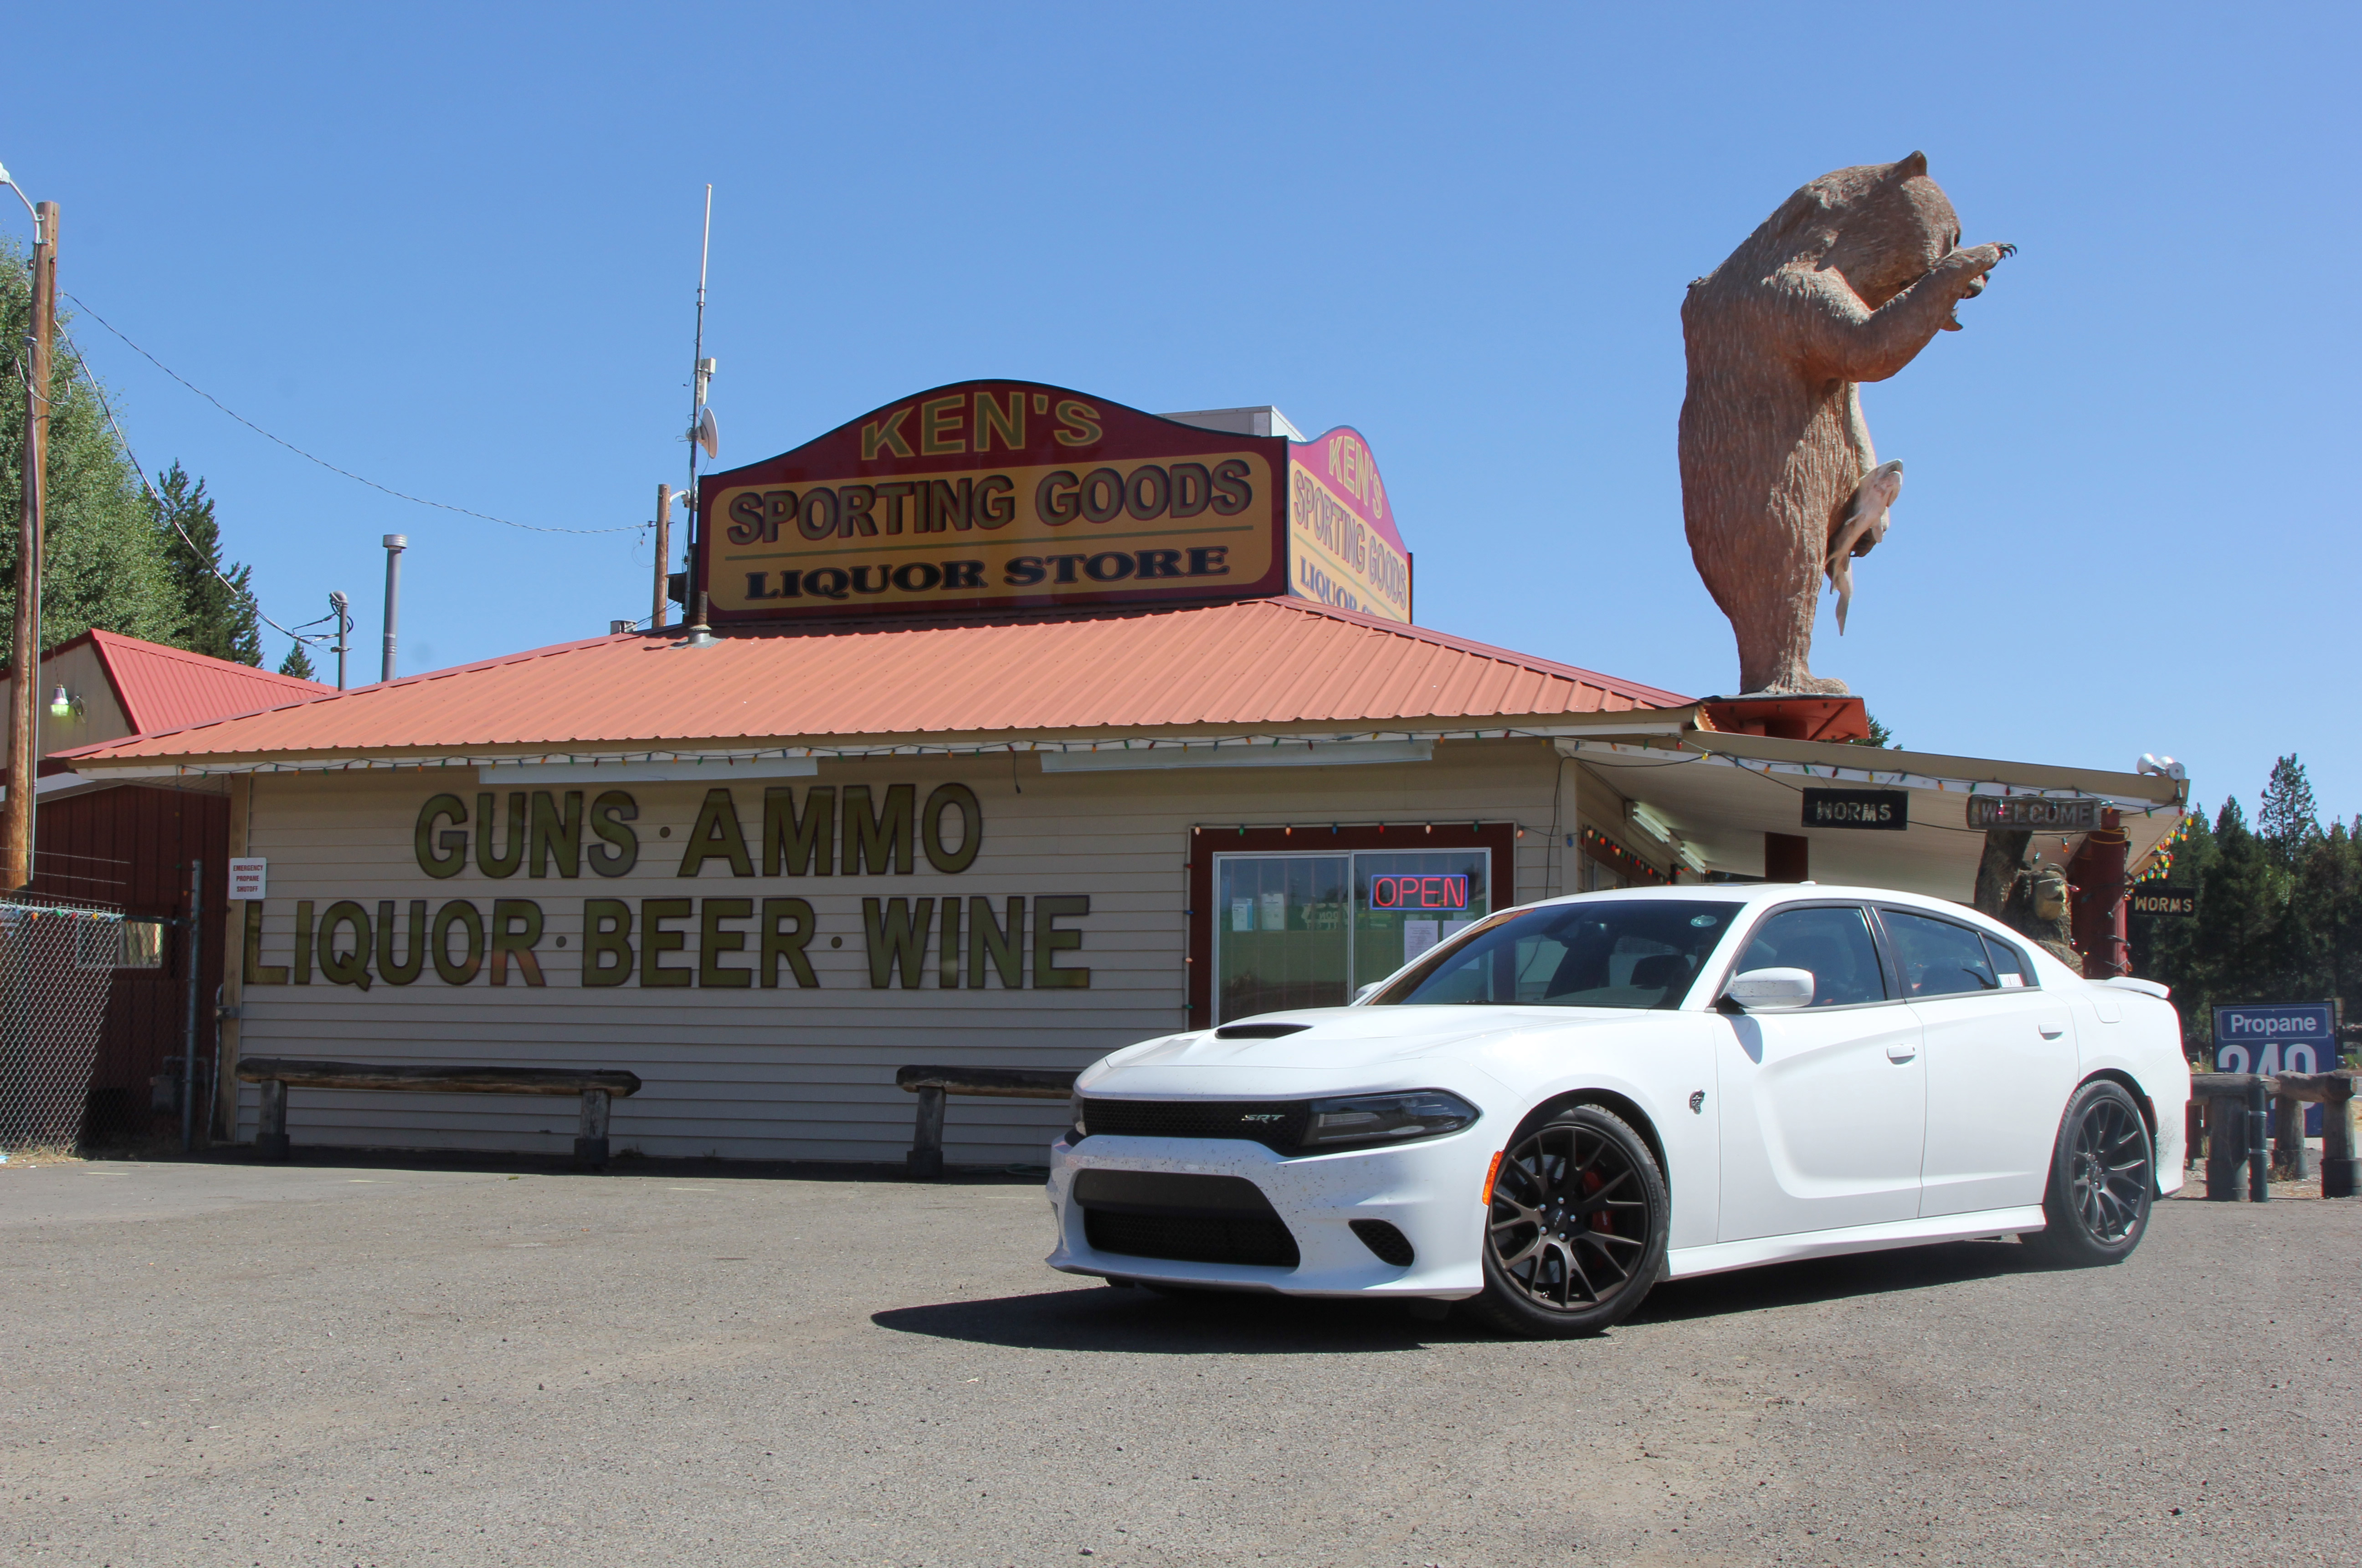 Beer, funs, ammo, wine, worms, whatever you need, Ken's Sporting Goods had it.